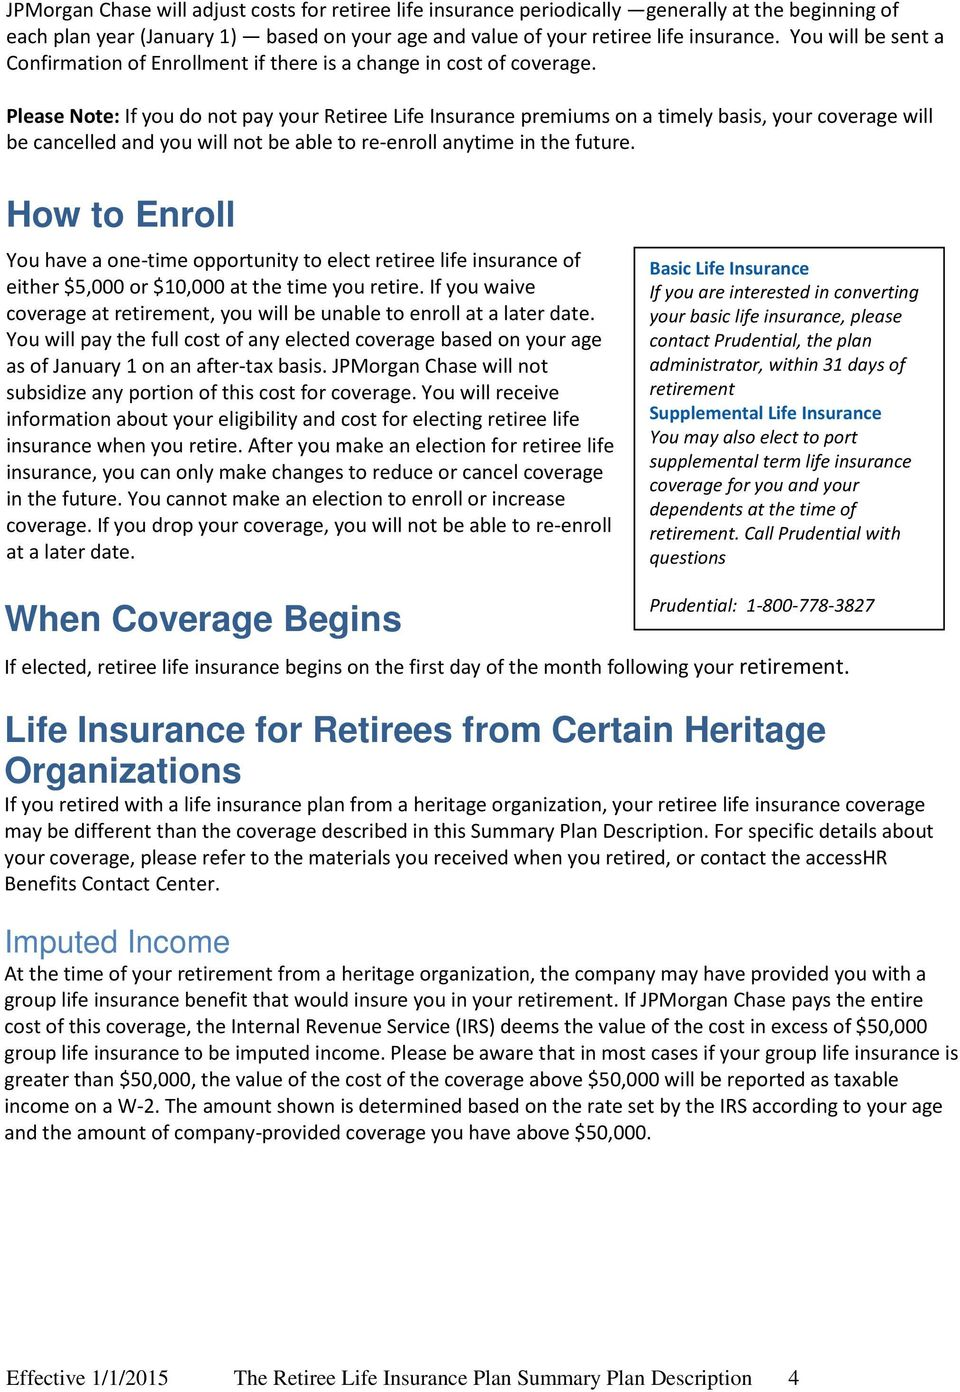 Pension Insurance: Certificate of Insurance and Voluntary Contributions 51